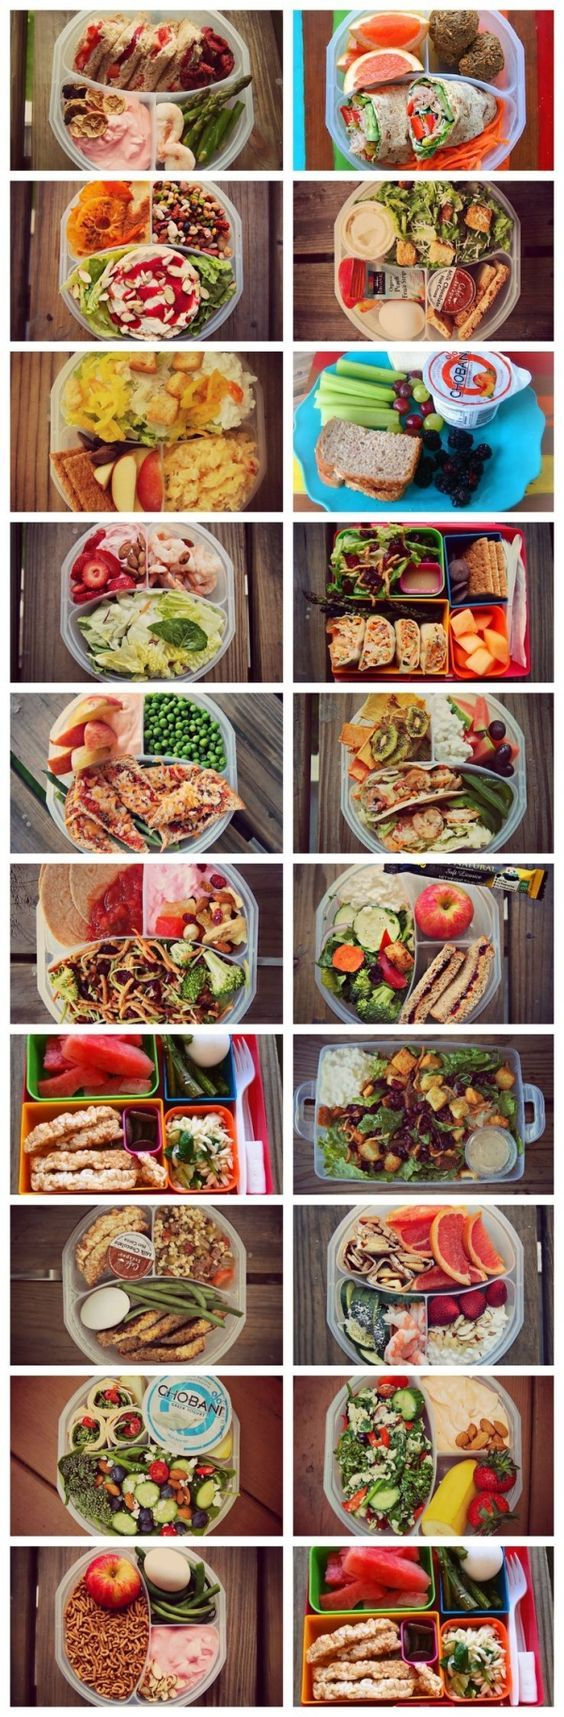 Healthy Lunch Ideas                                                                                                                                                                                 More